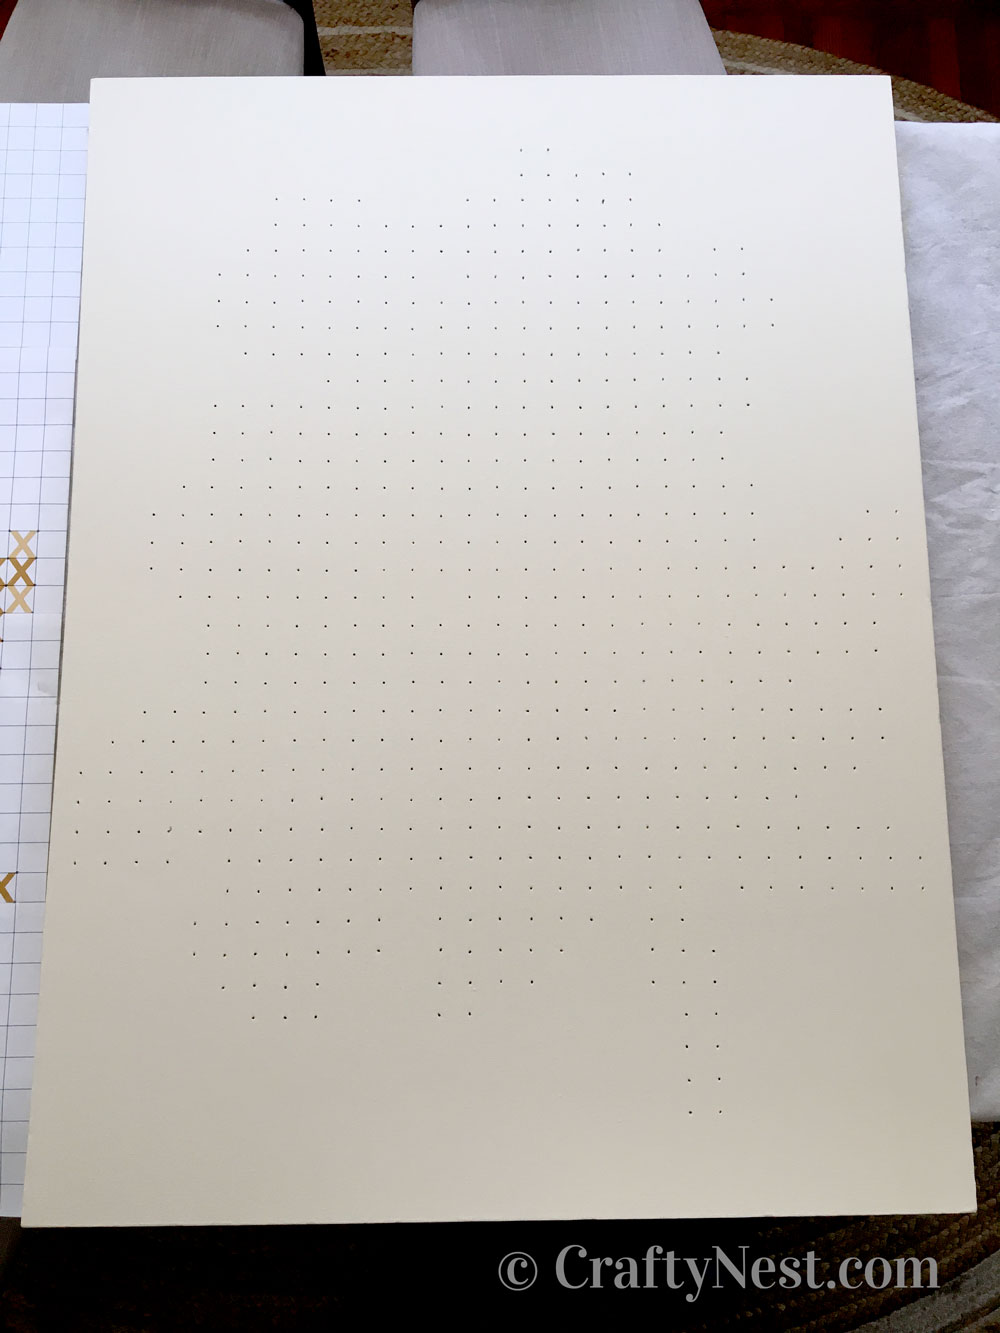 Blank painted canvas with holes, photo